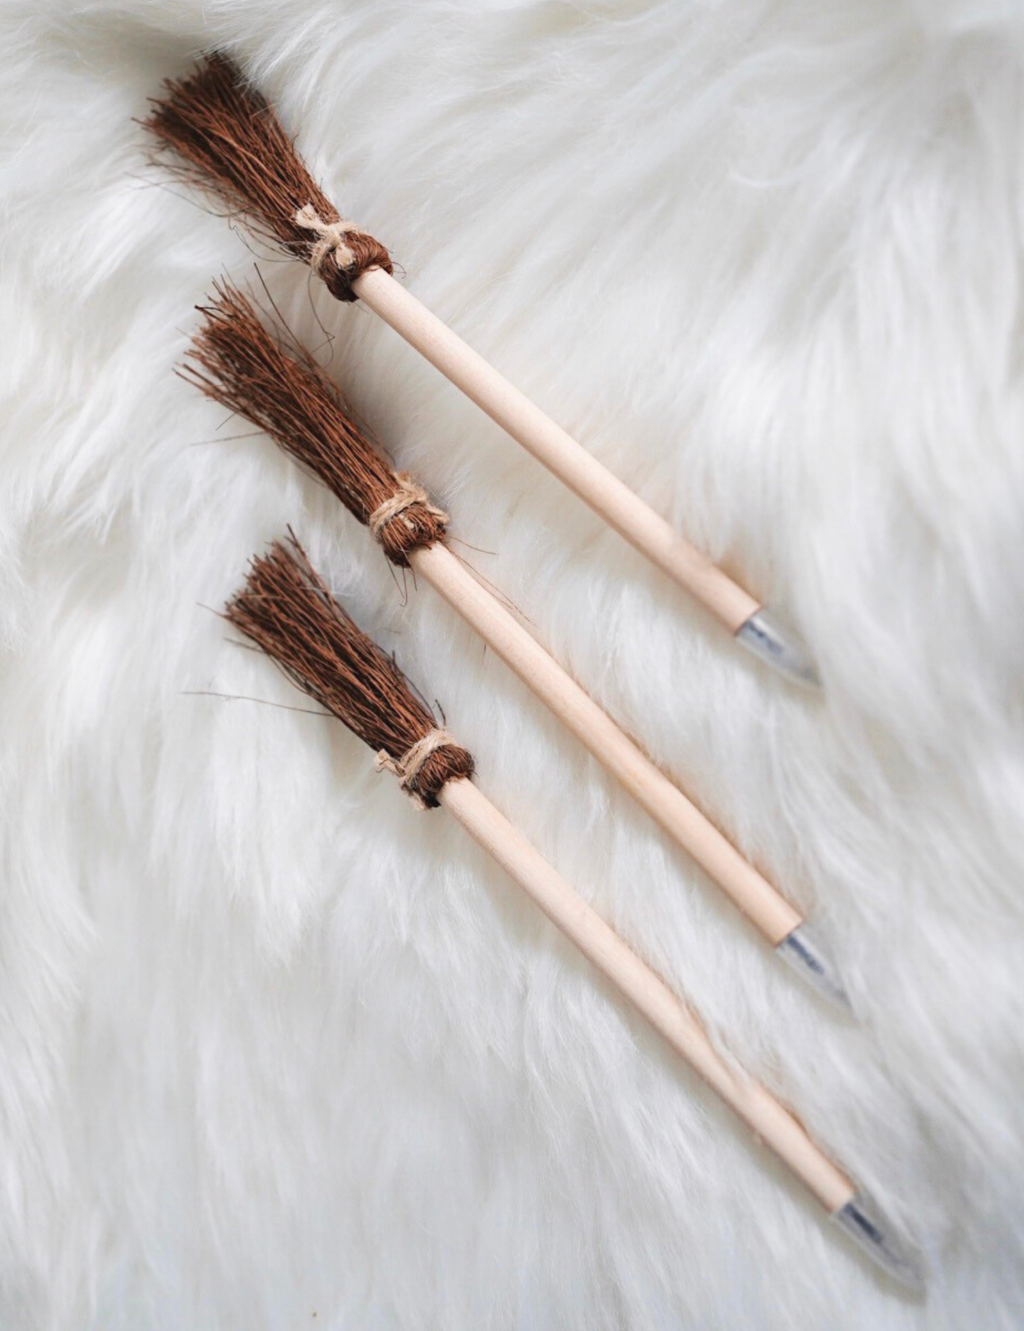 Witch Broom Besom Pens